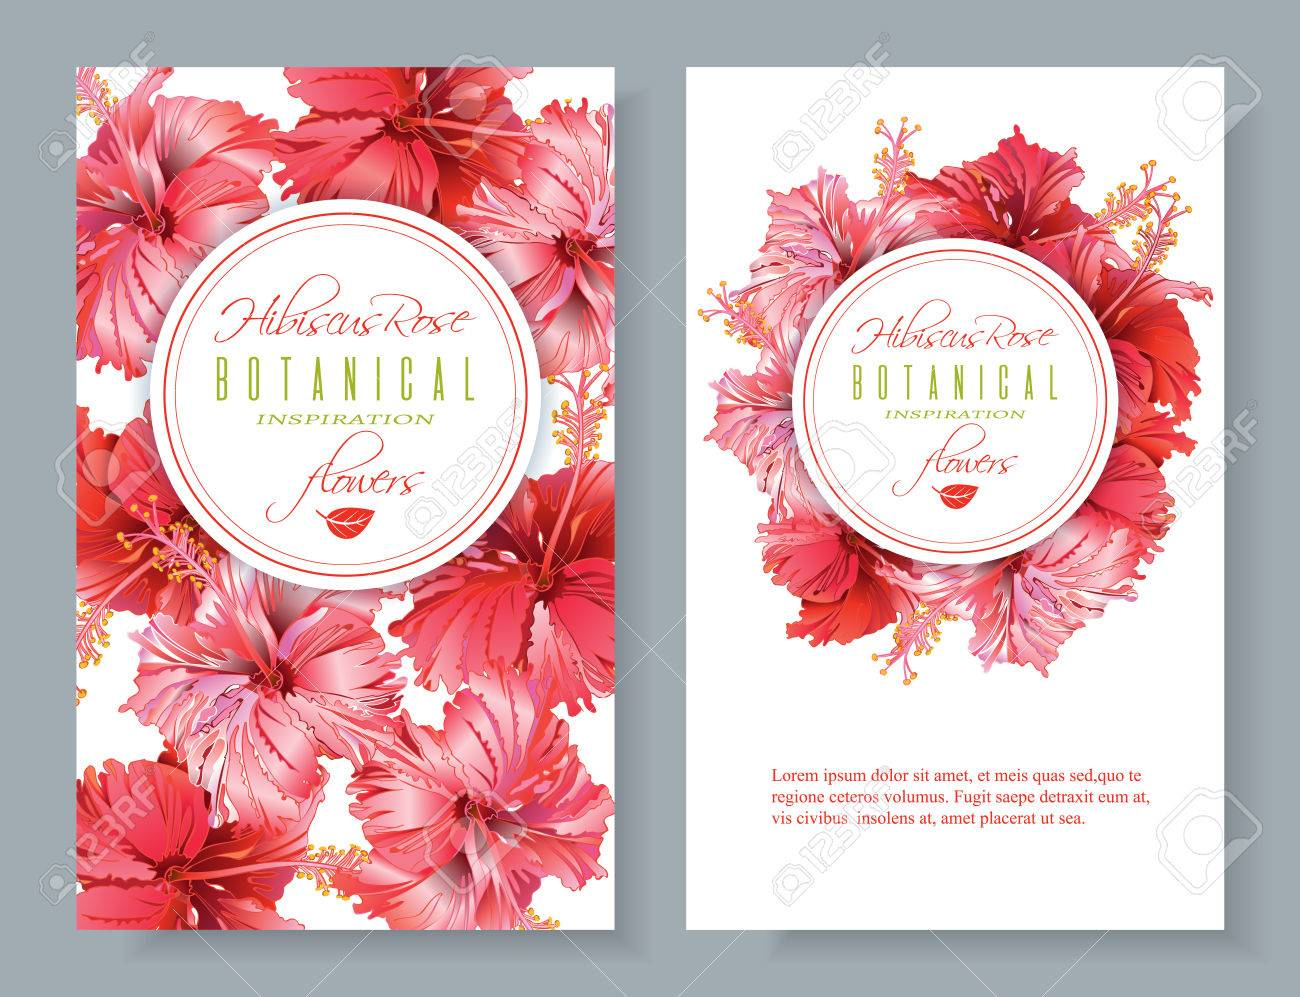 Hibiscus flower banners - 77238601